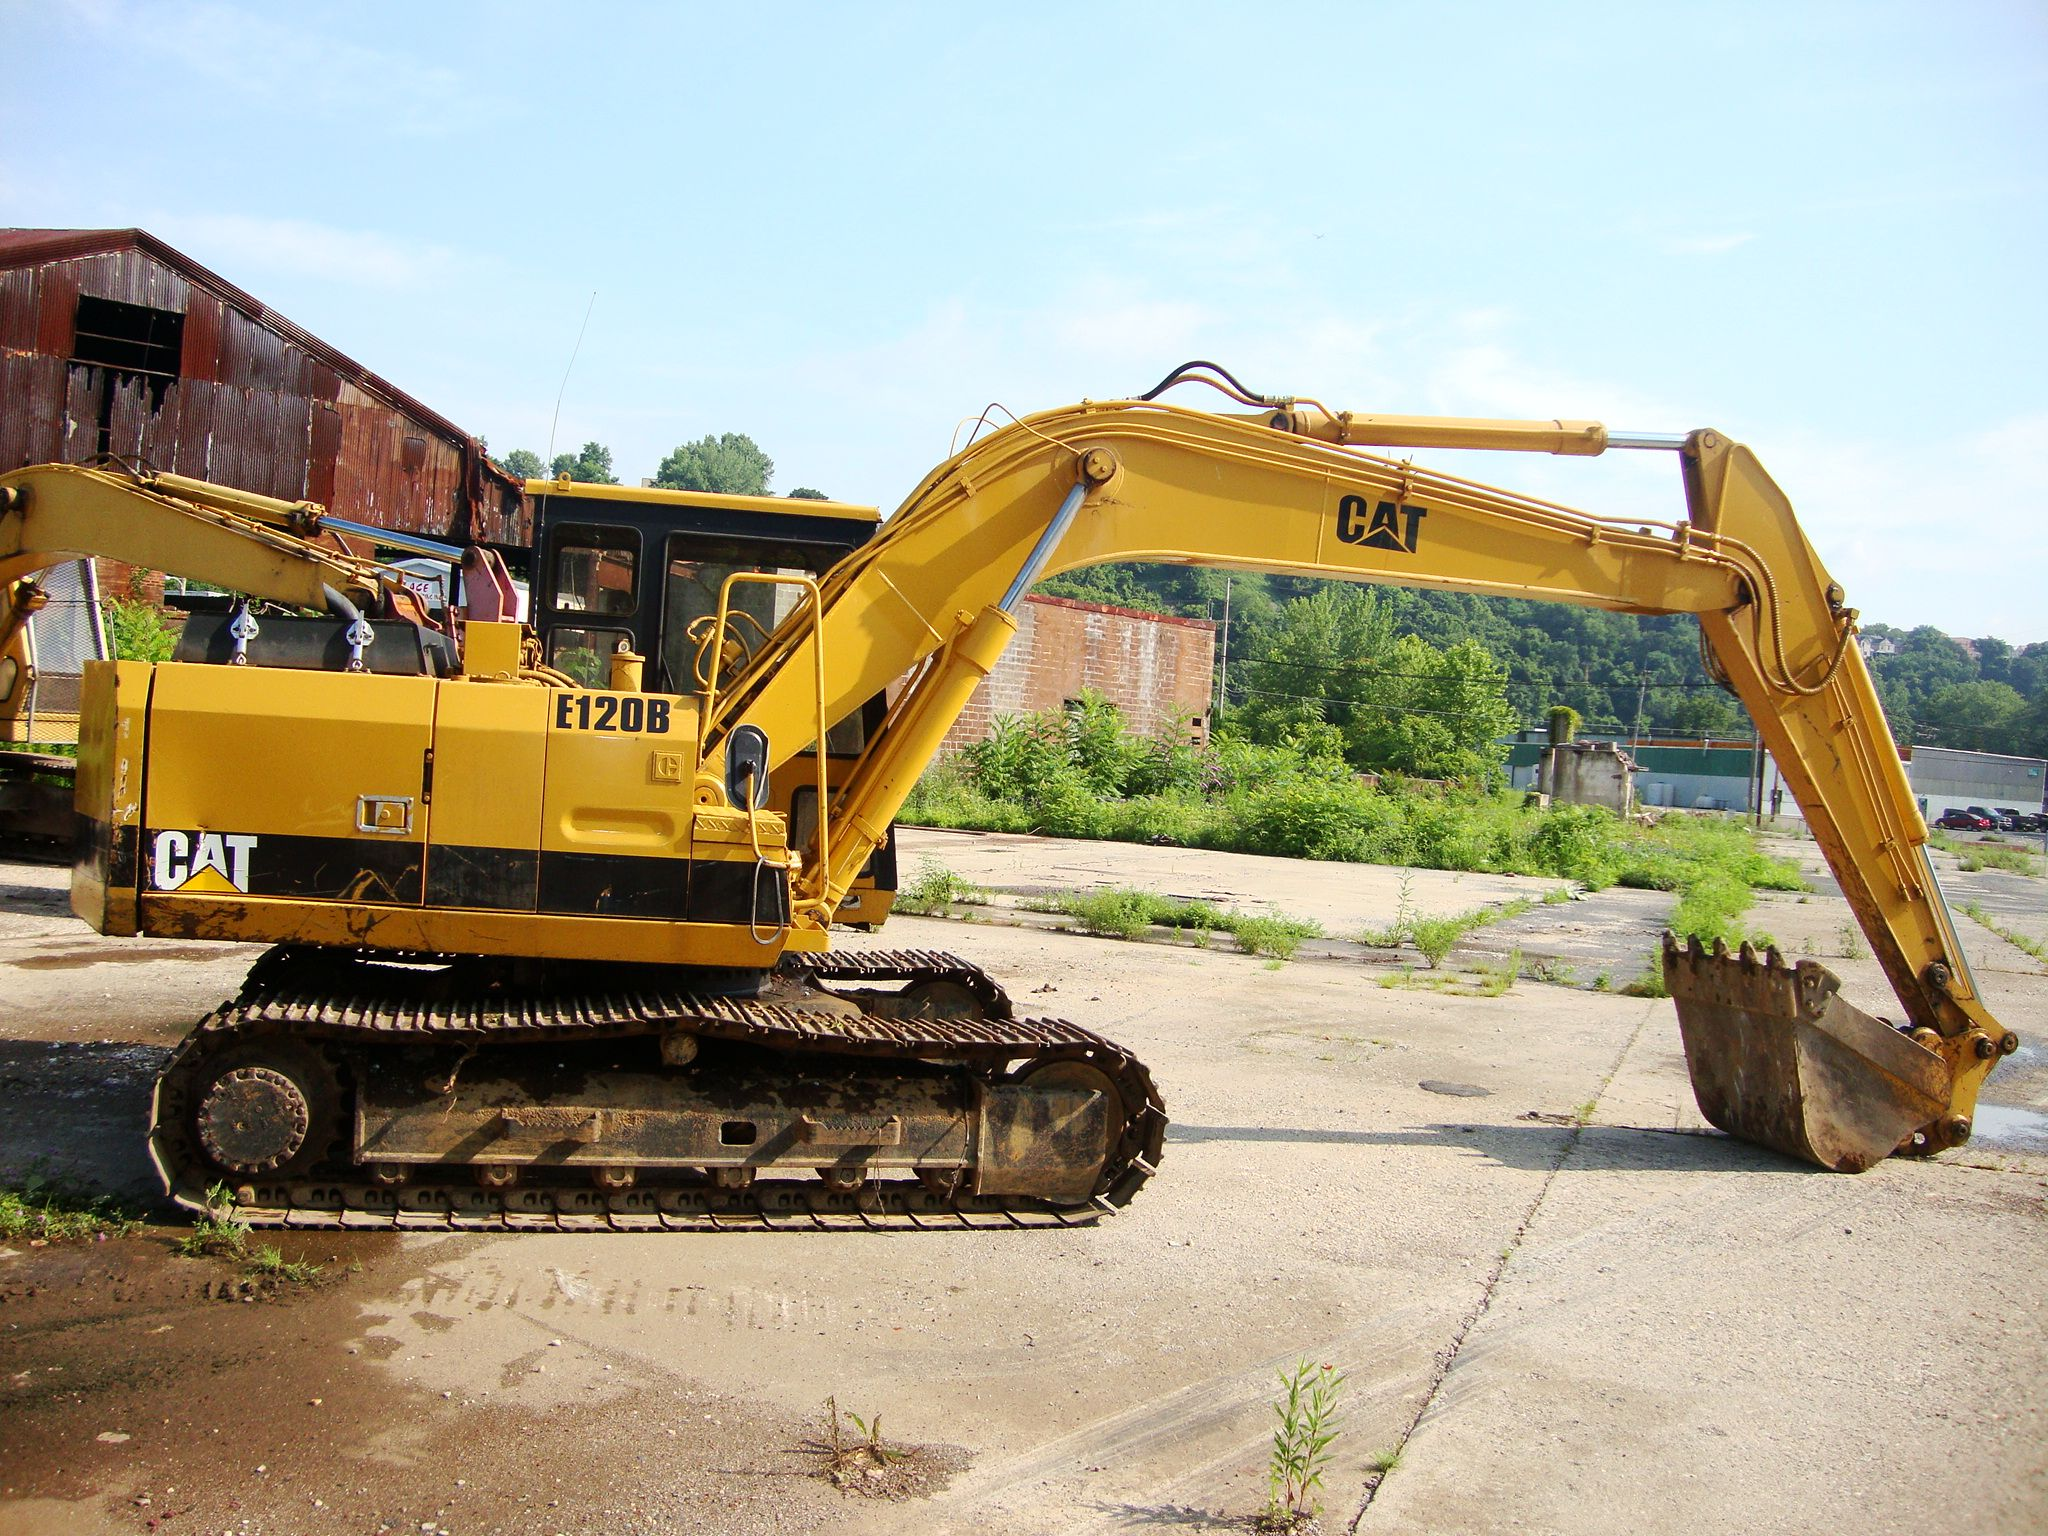 Cat E120 Caterpillar Heavy Equipment Monster trucks